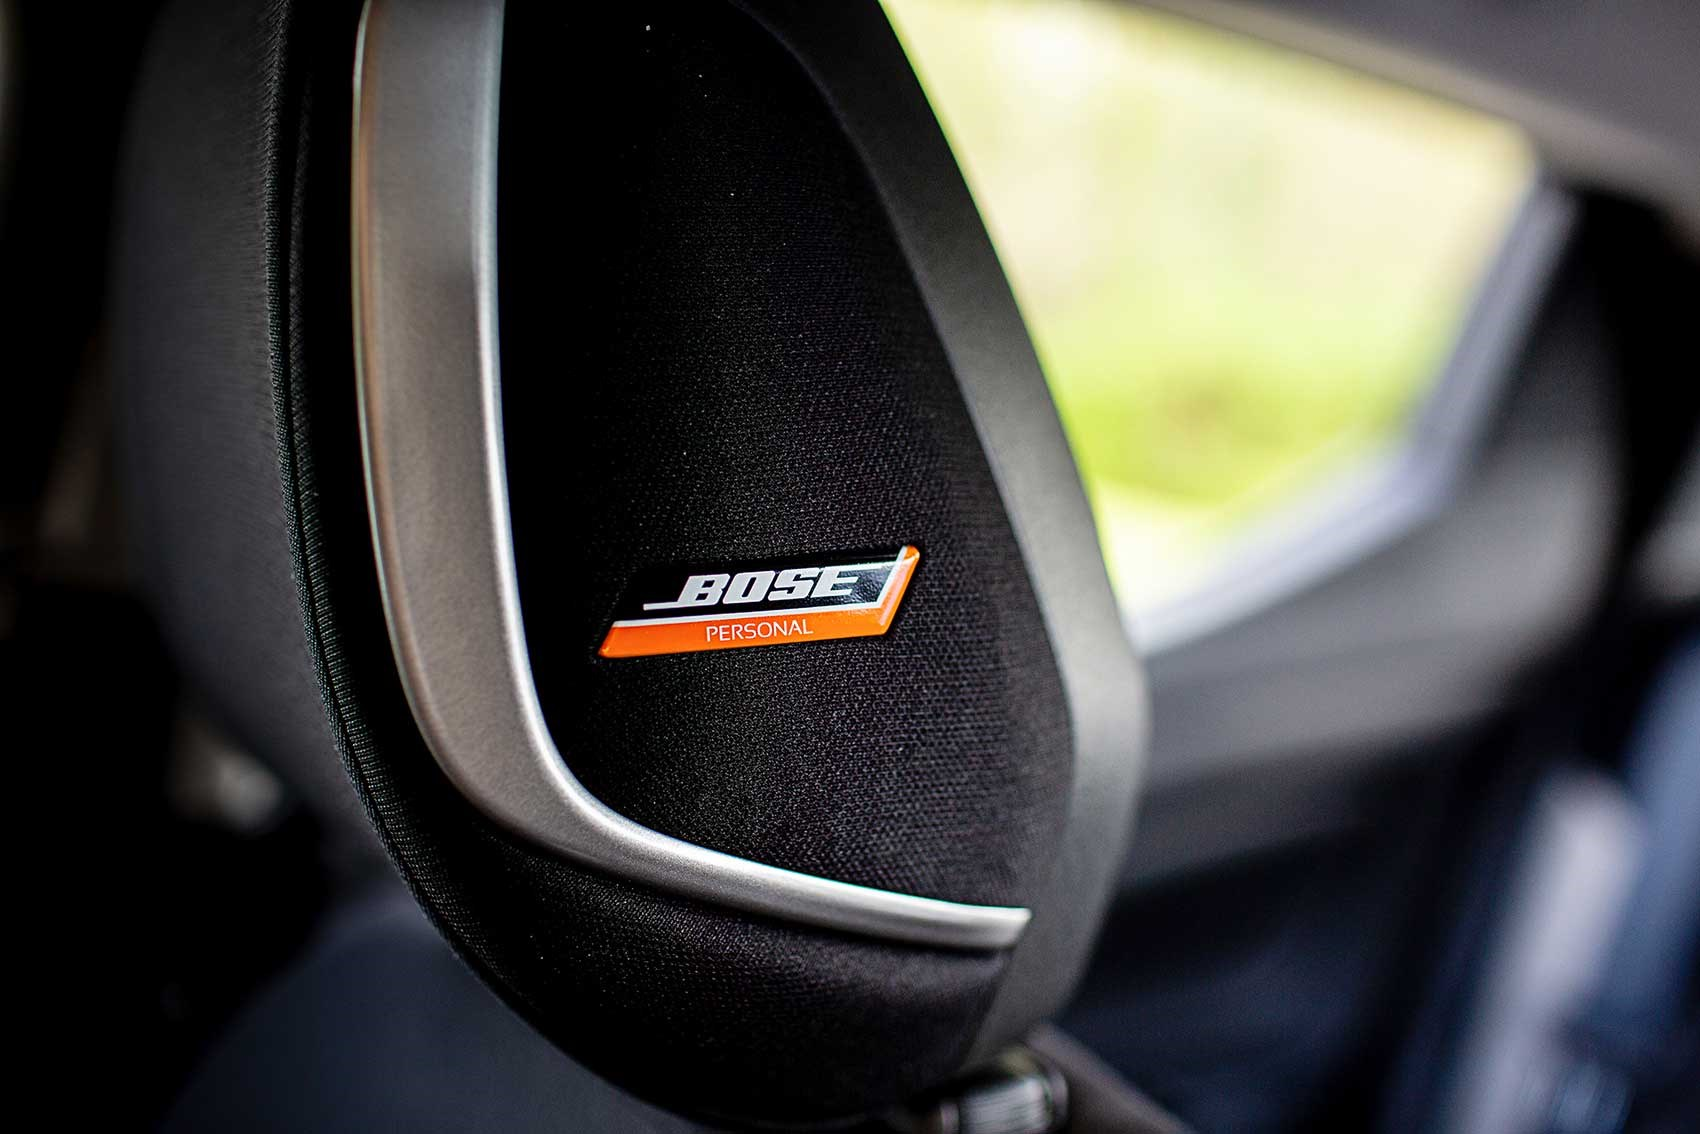 Bose Speakers For Cars >> Nissan Micra PersonalSpace headrest stereo speakers | CAR ...